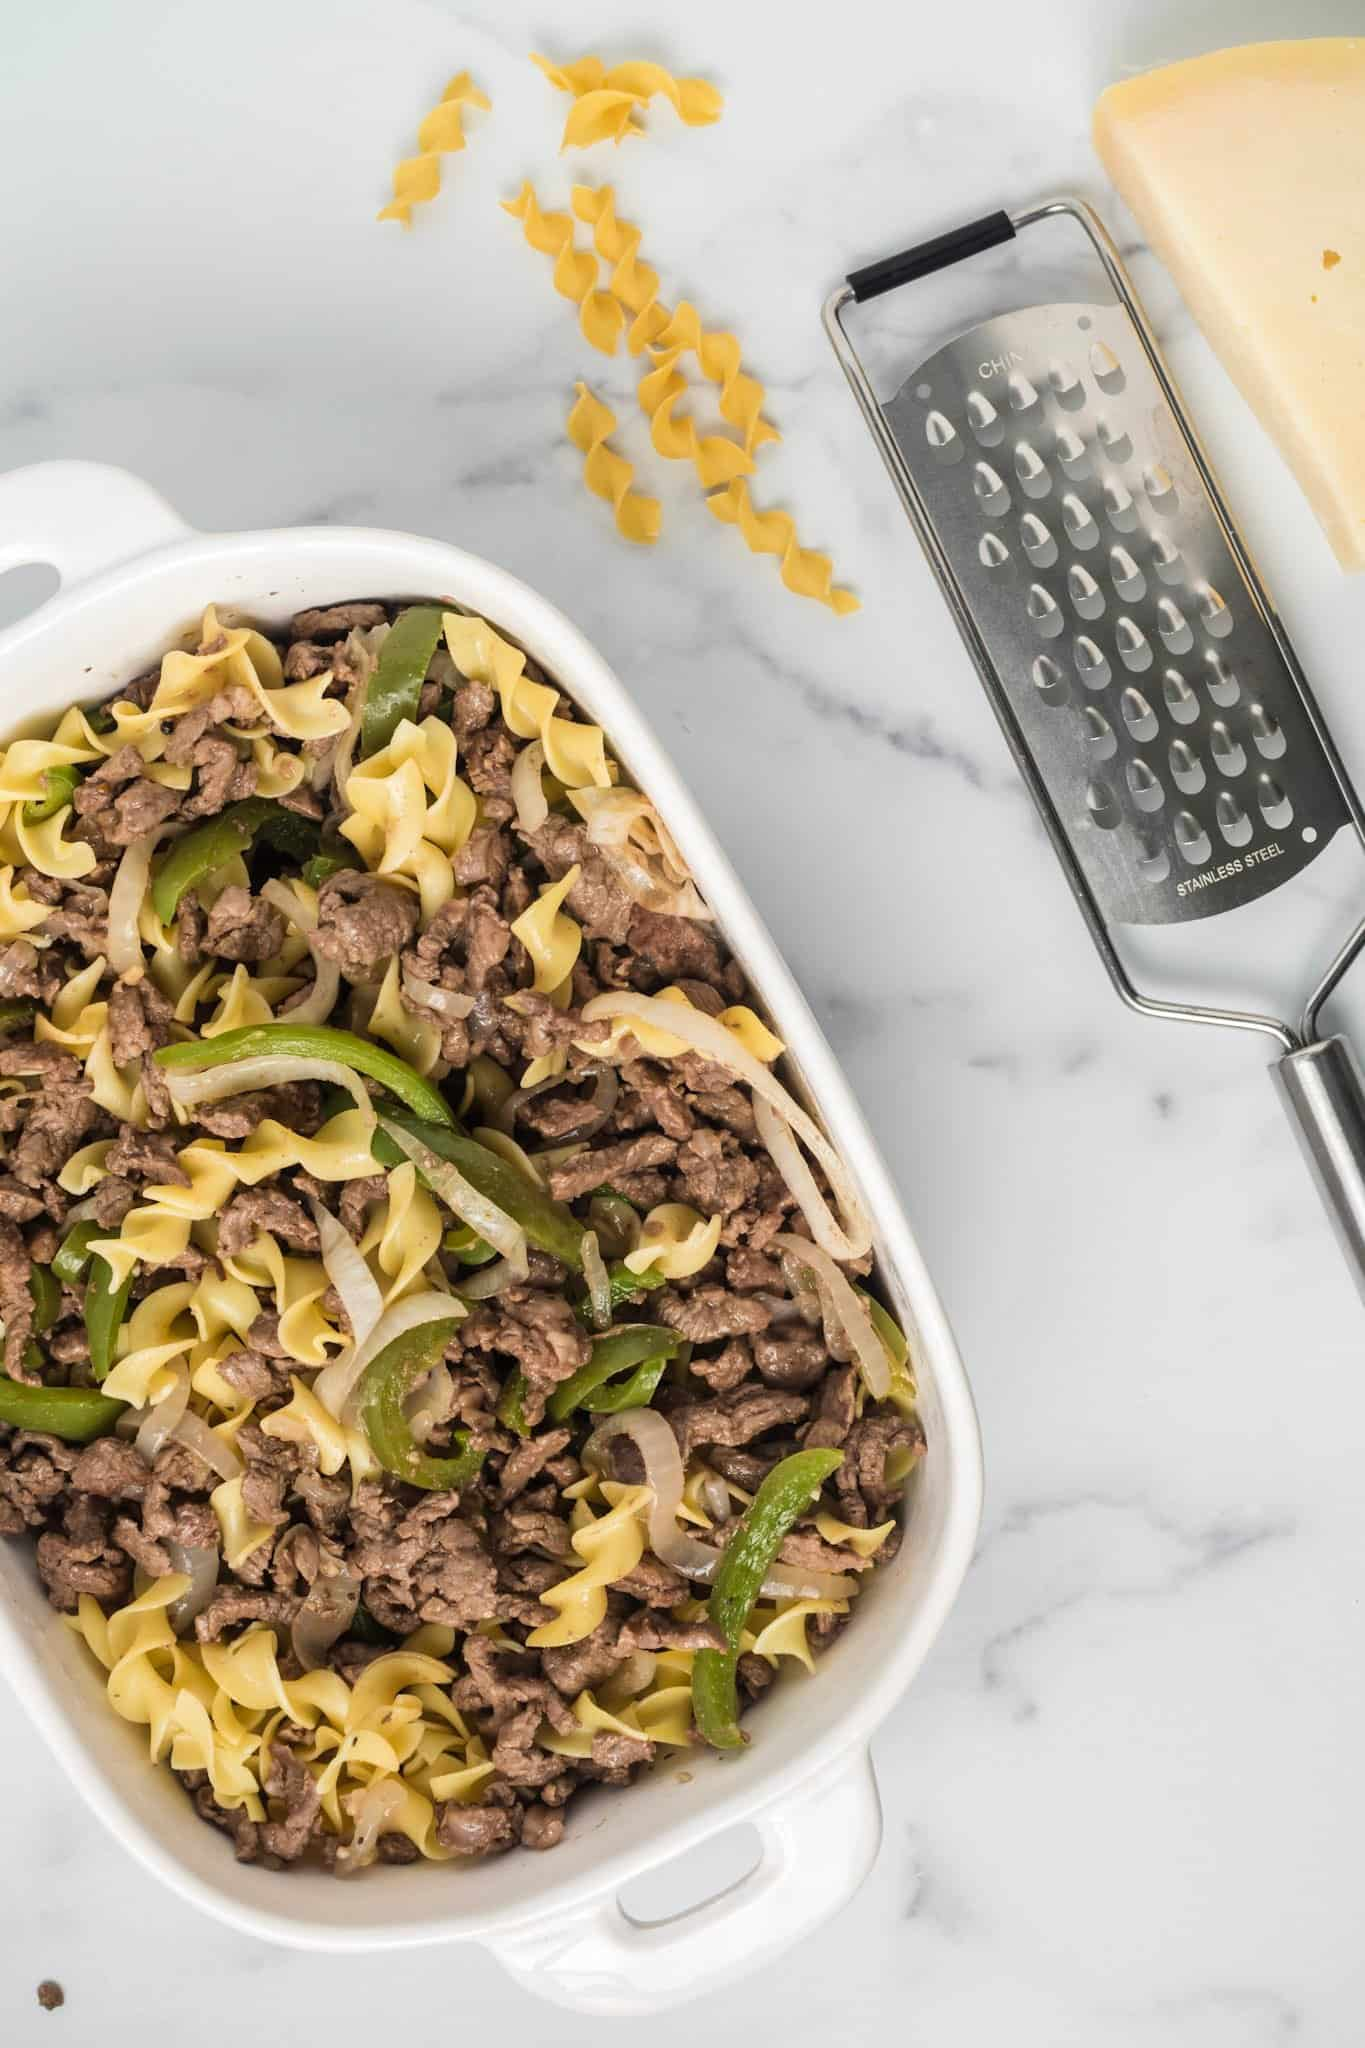 cooked egg noodles, cooked steak, green peppers and onion added to white casserole dish.